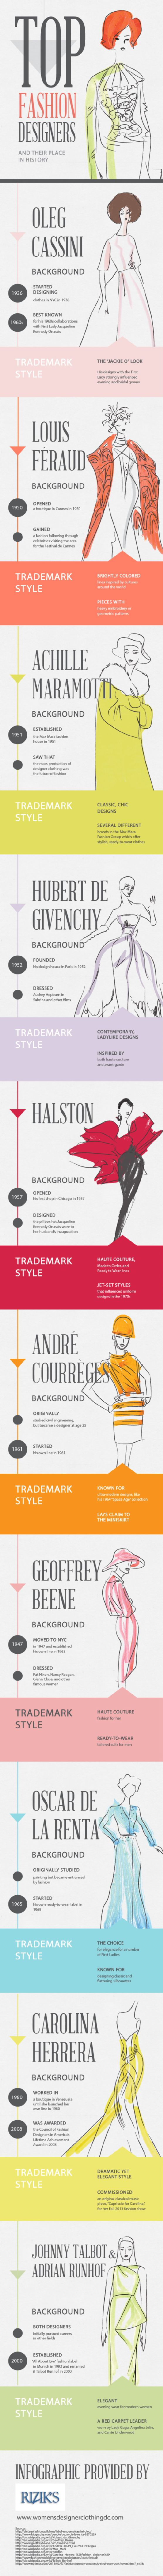 best icons fascinating style inspiration images on pinterest